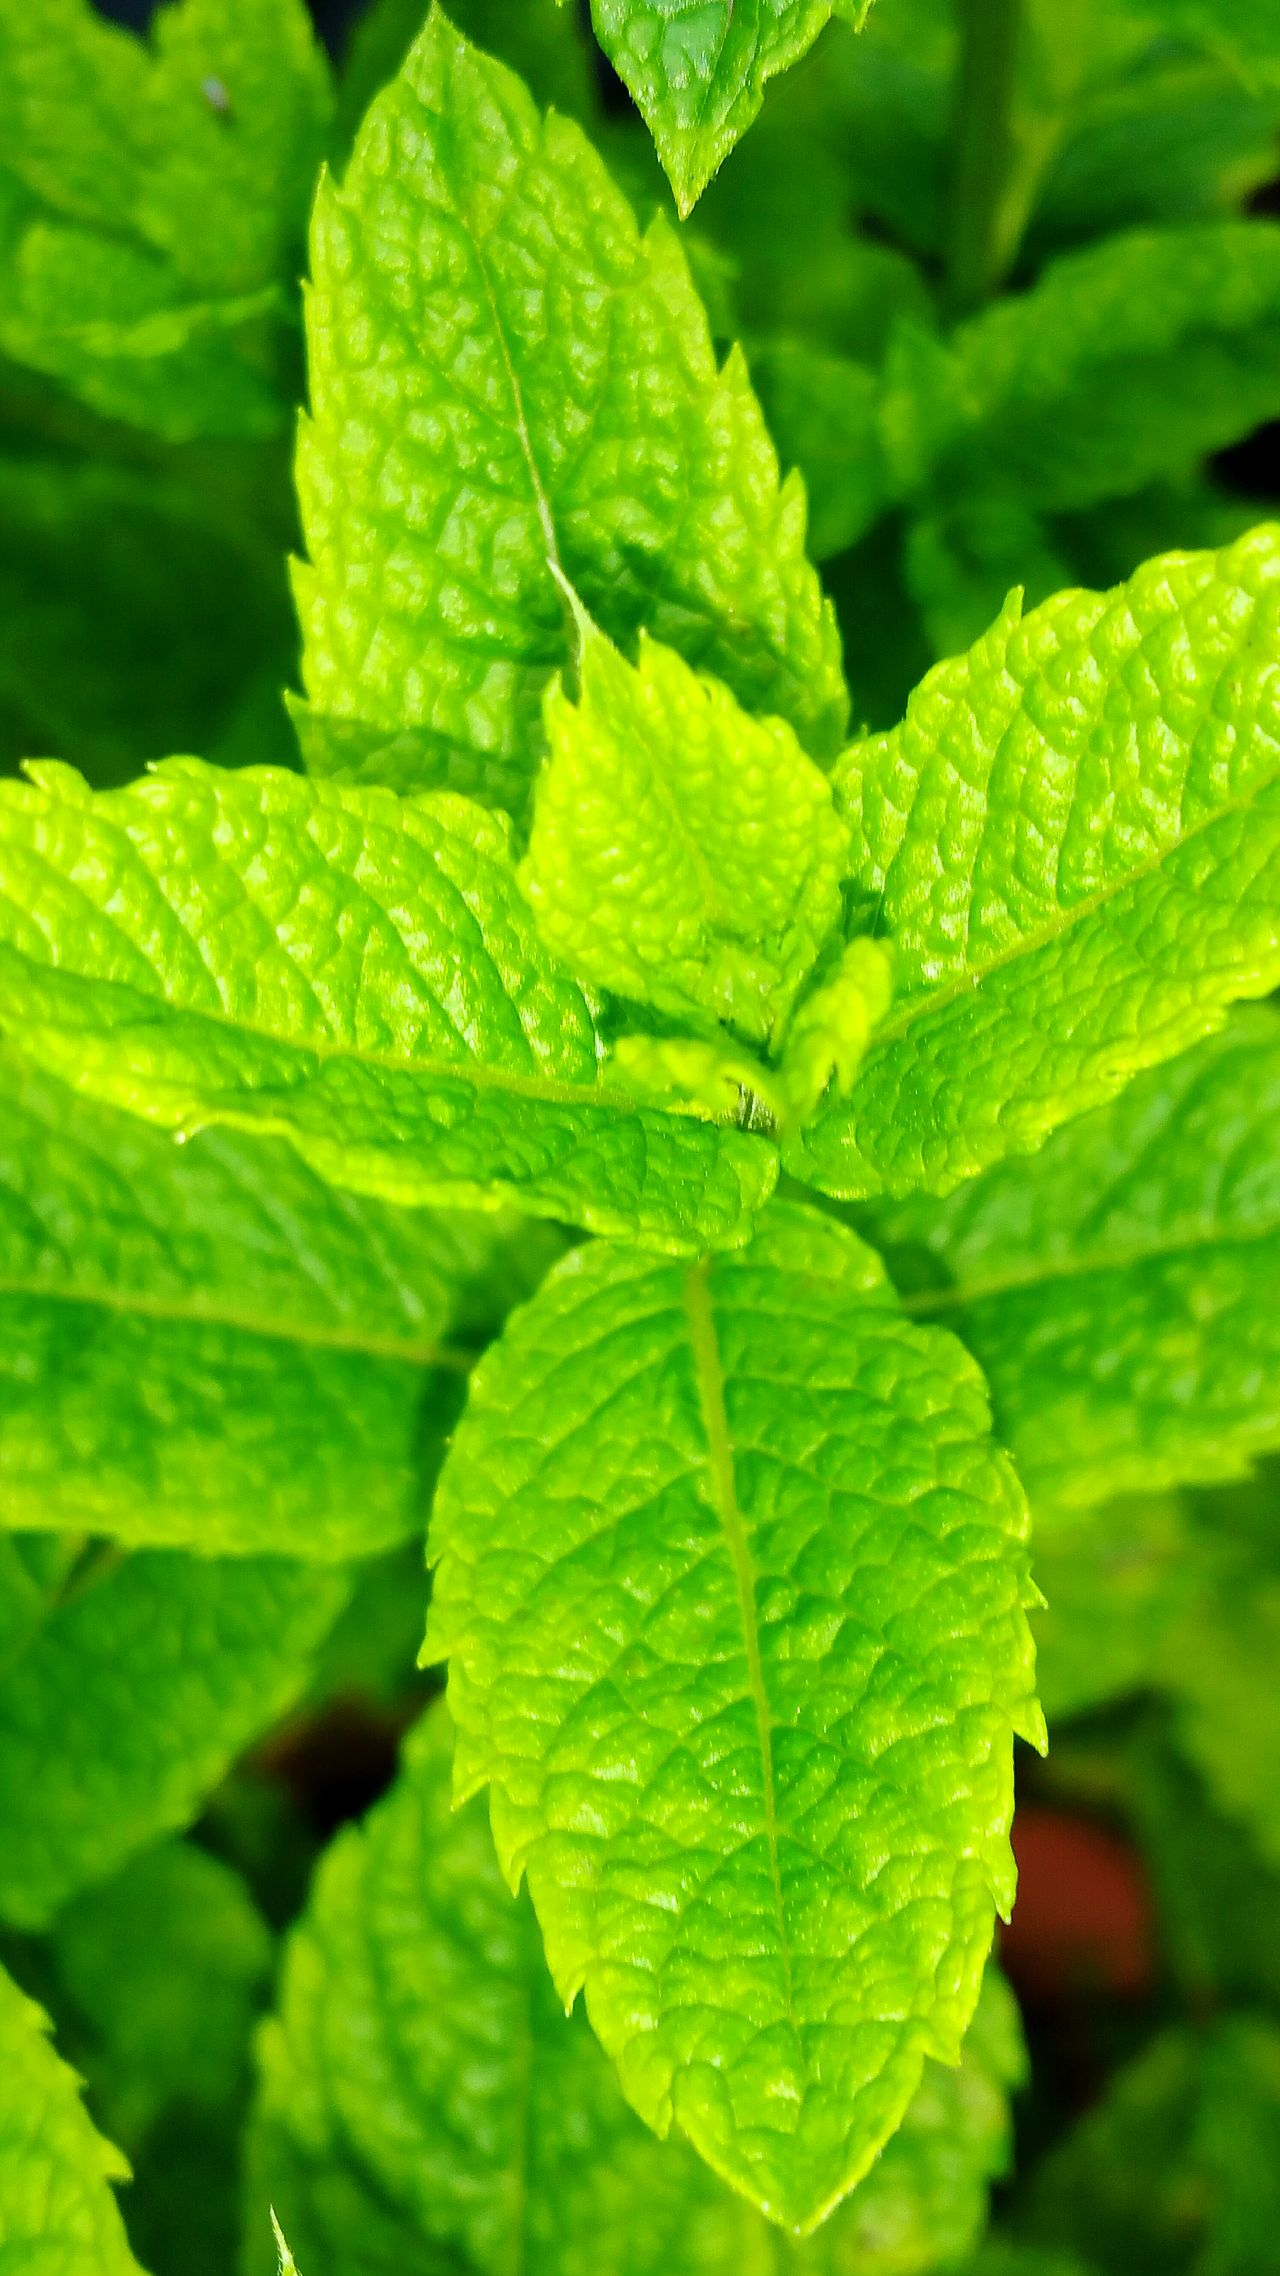 Mint Leaves Mint Plant Garden Photography Garden Hanging Out Plant Plant Photography Green Mint Mint Green